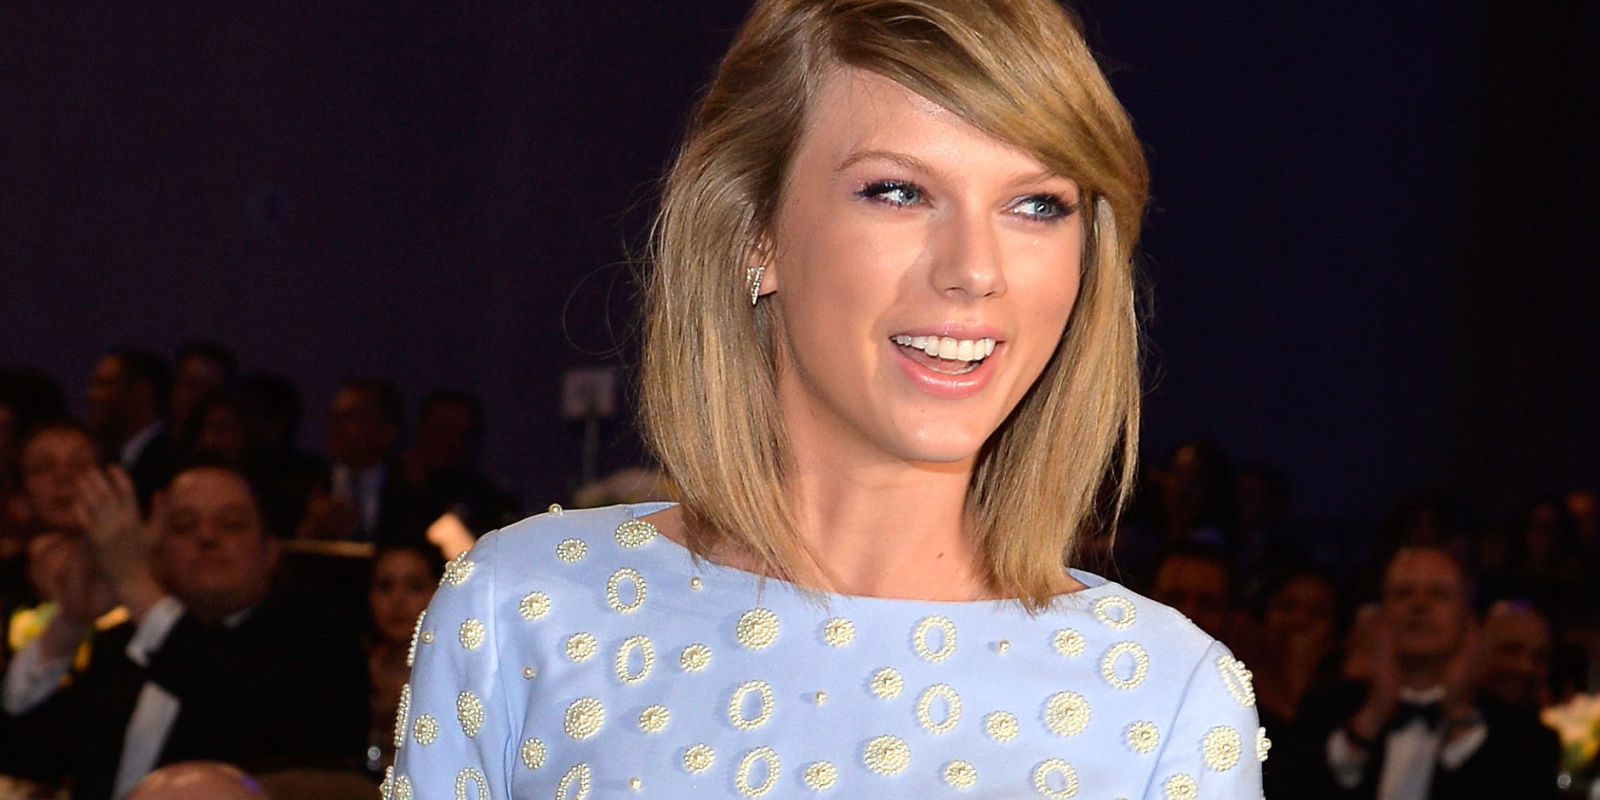 is taylor swift dating someone right now